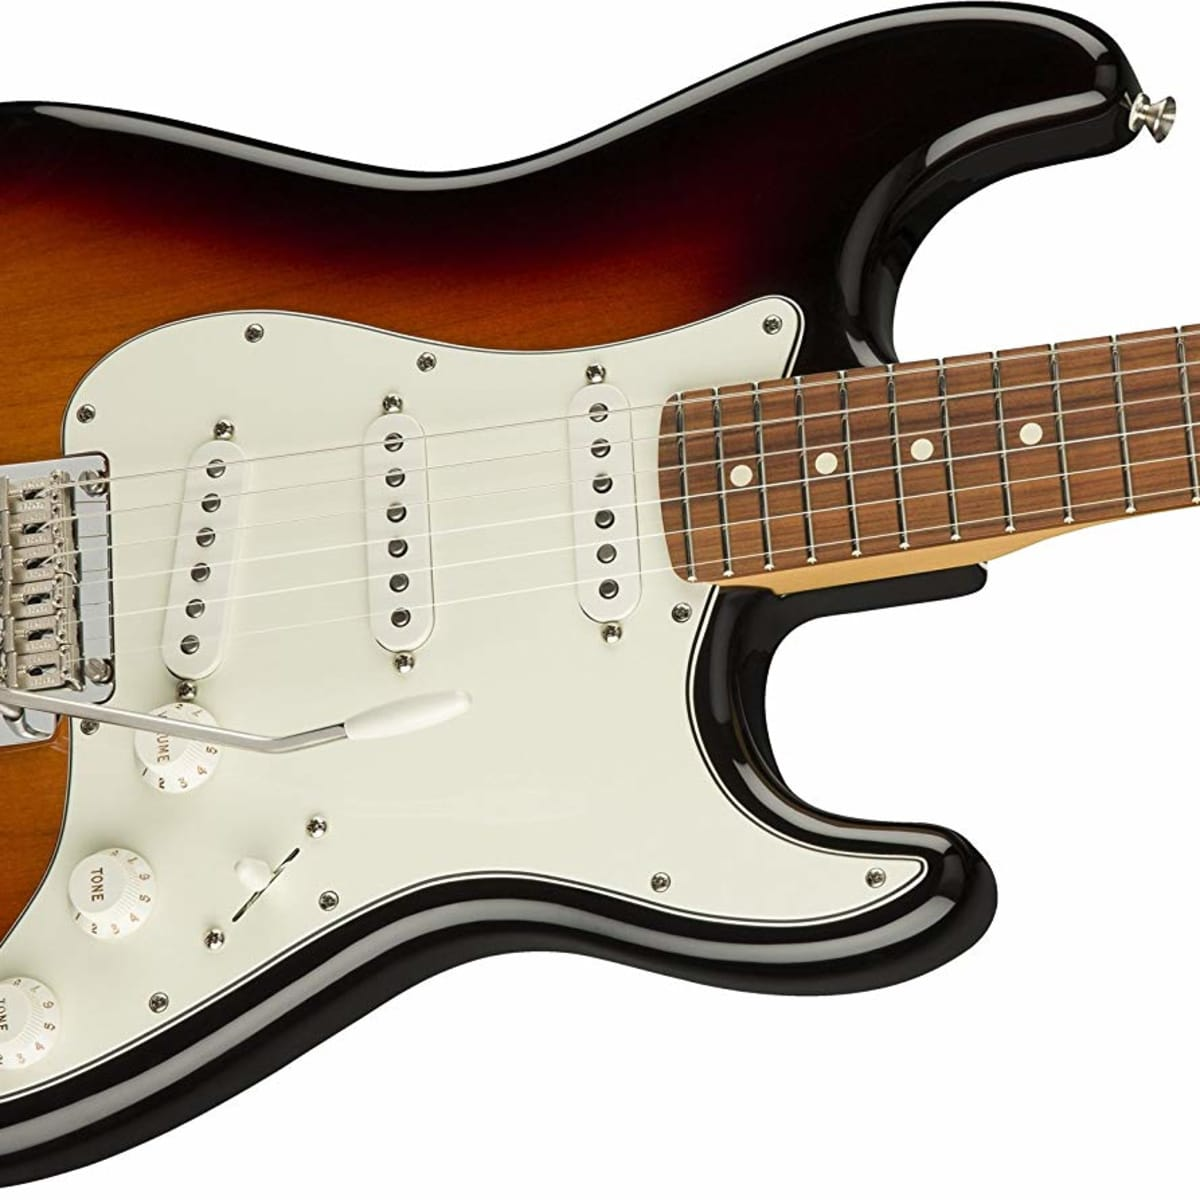 Fender Mexican Strat Vs American Stratocaster Guitar Review Spinditty Music